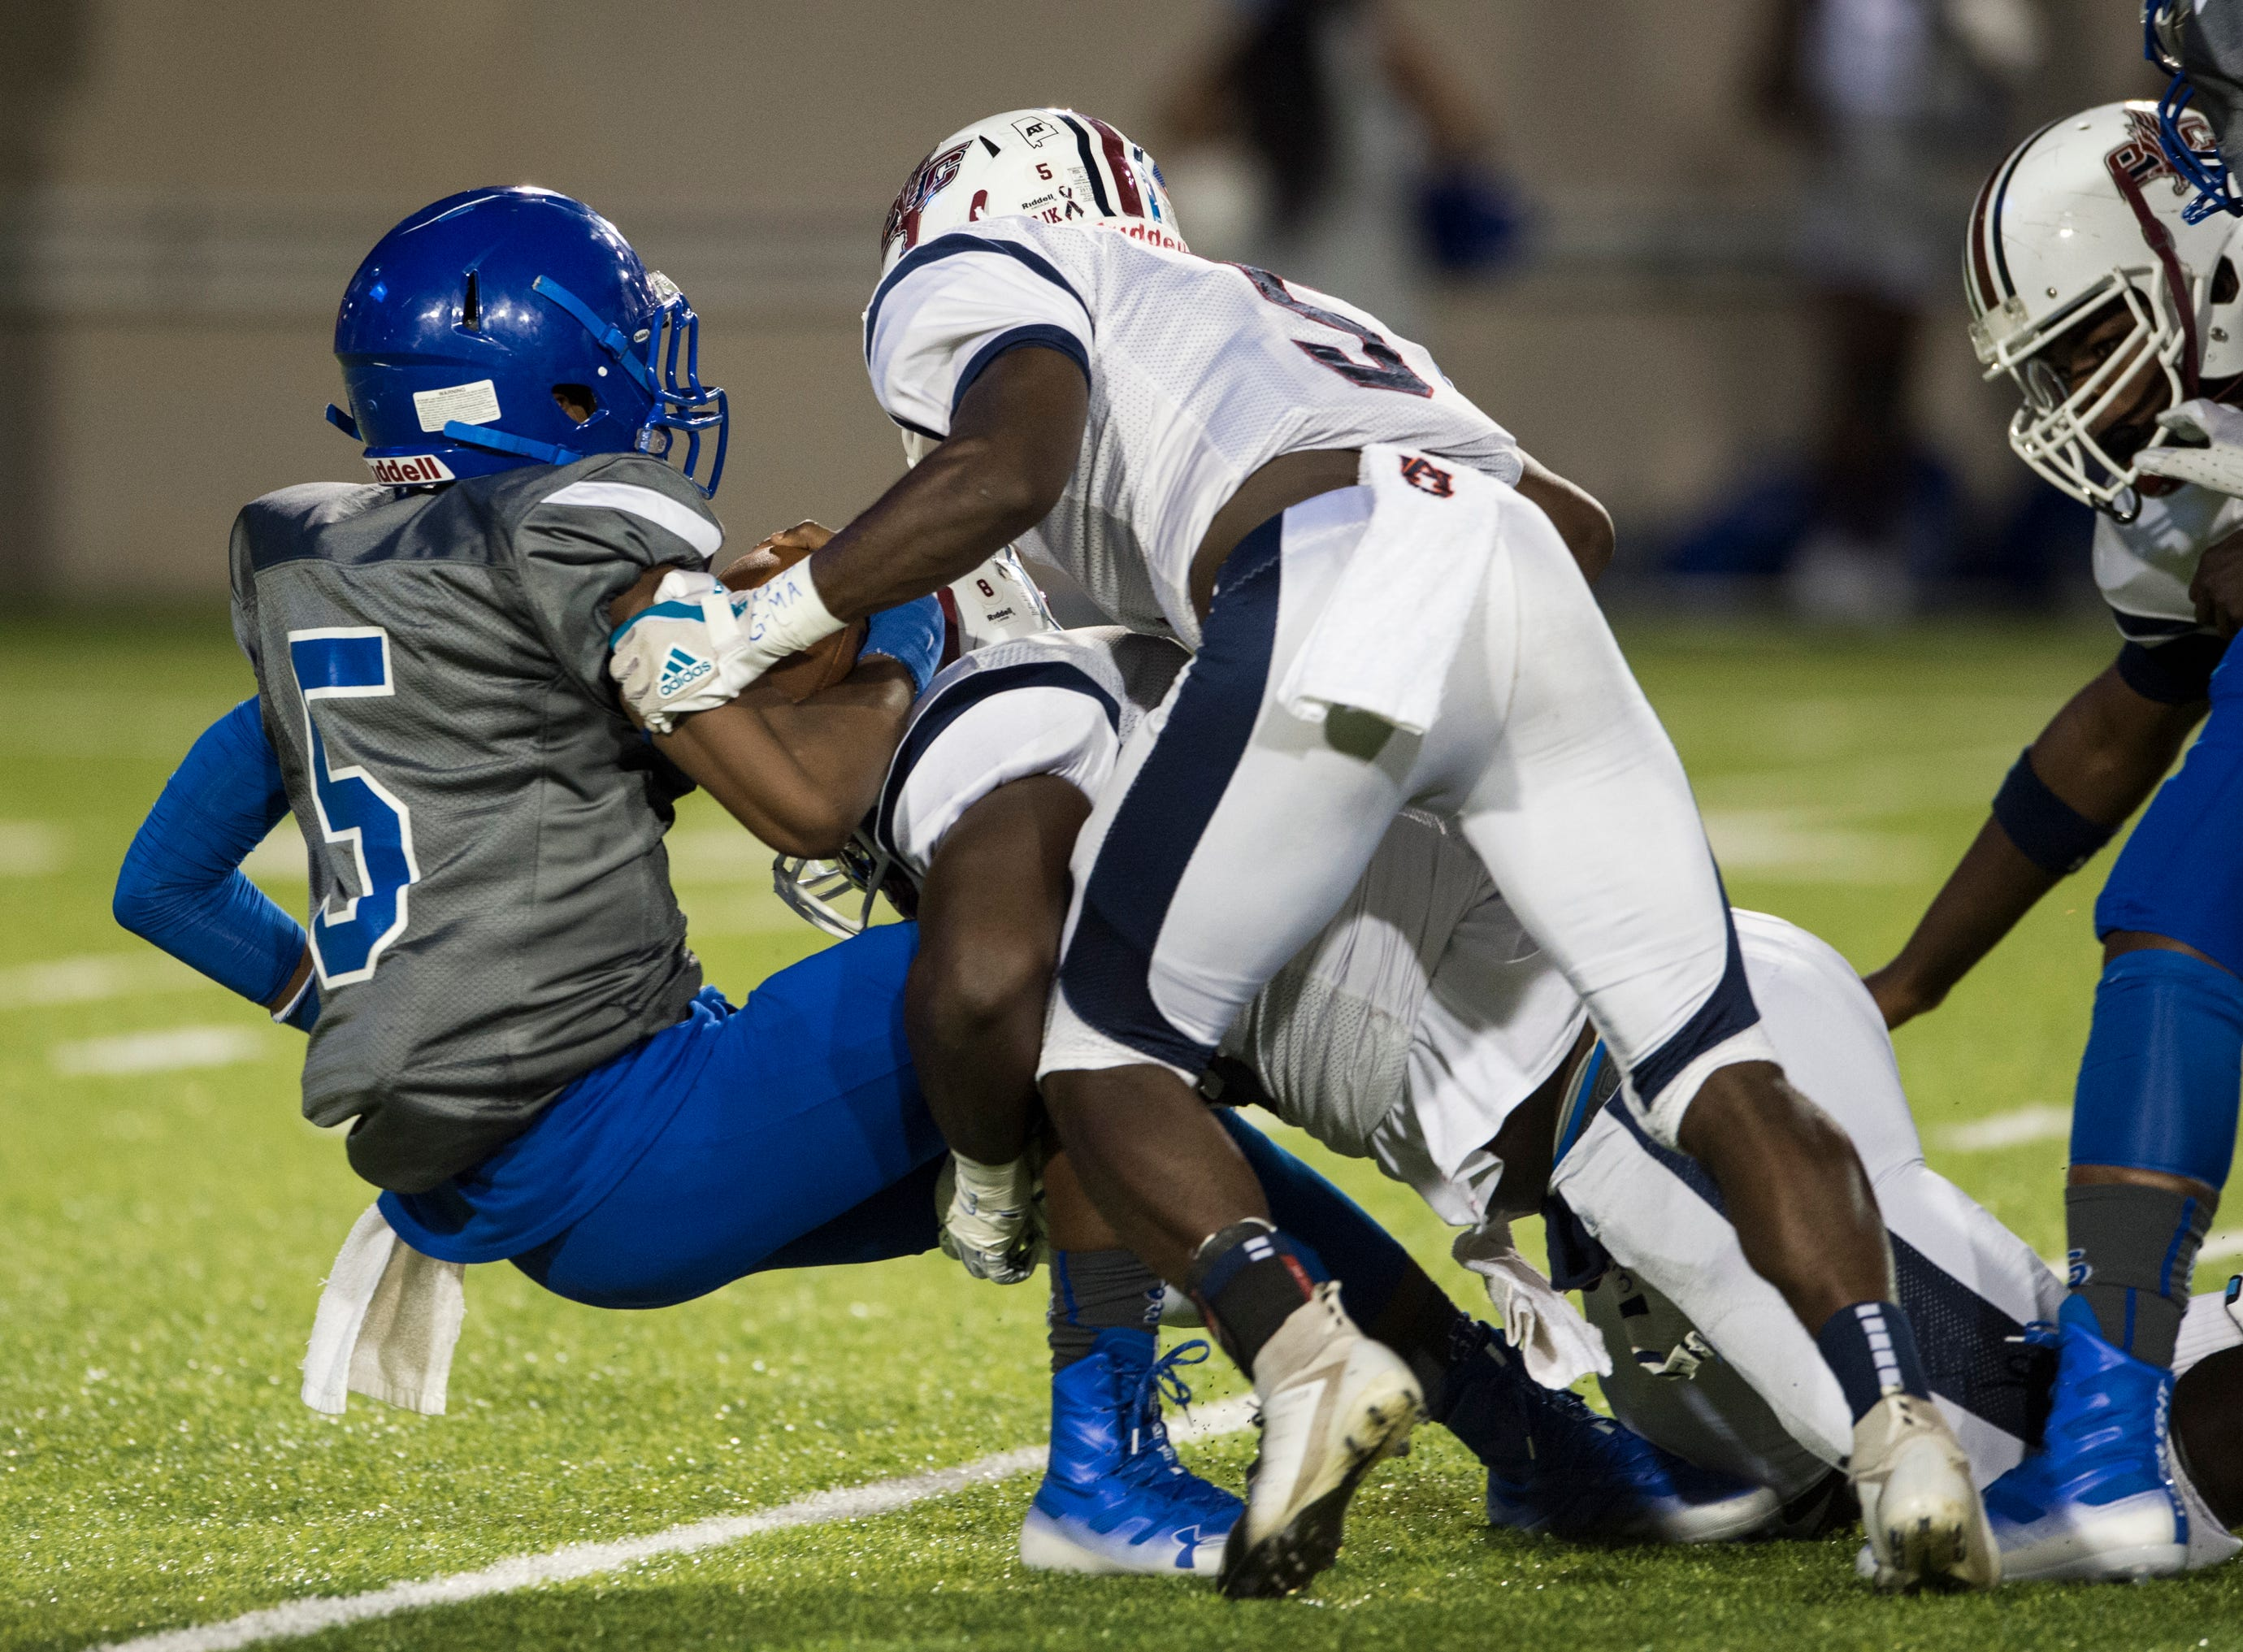 Lanier's Marquarius Moore (5) is taken down in the backfield by a swarm of Park Crossing defenders at Cramton Bowl in Montgomery, Ala., on Friday, Sept. 21, 2018. Lanier leads Park Crossing 14-7 at halftime.